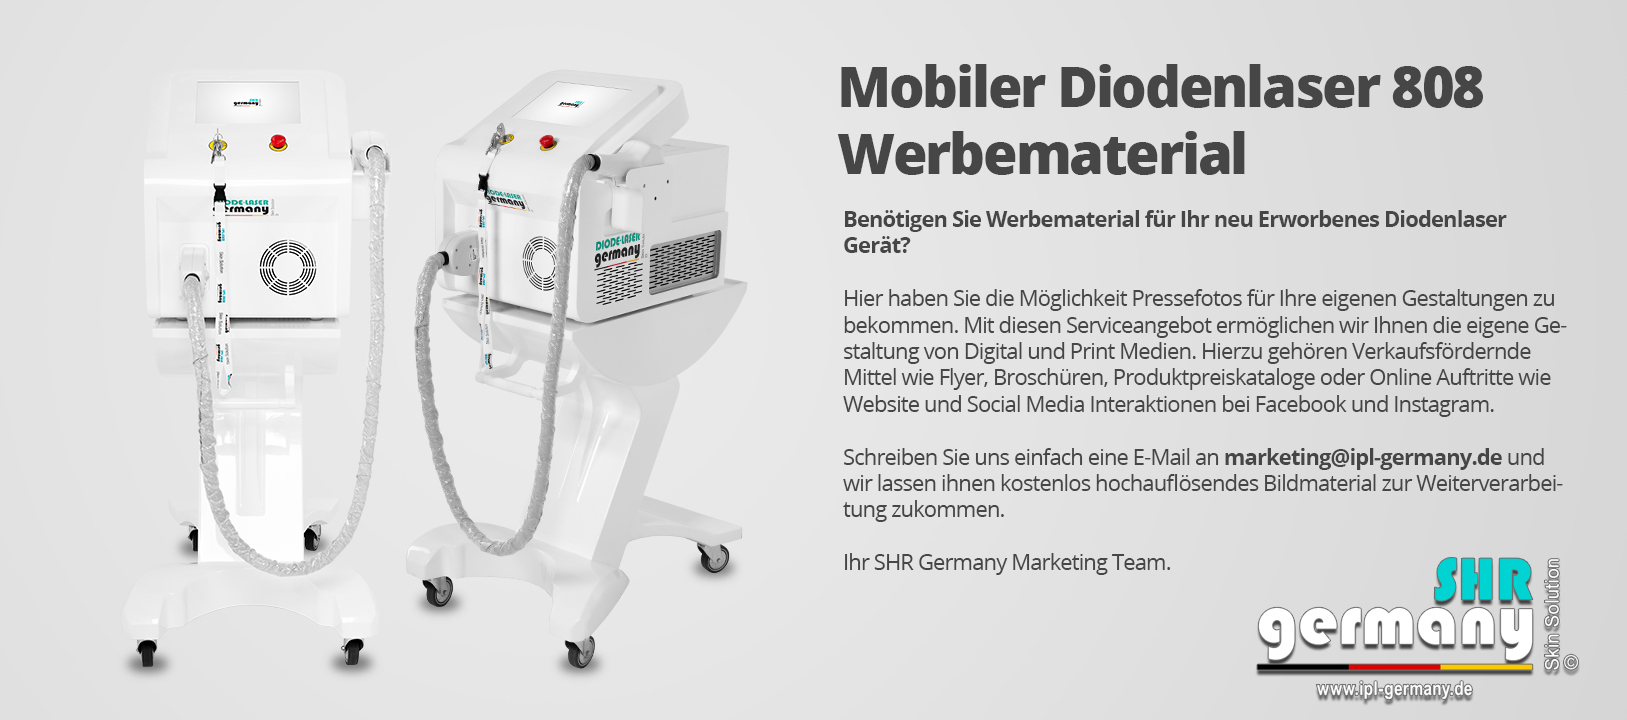 SHR_Germany_Diodenlaser_mobil_Werbematerial